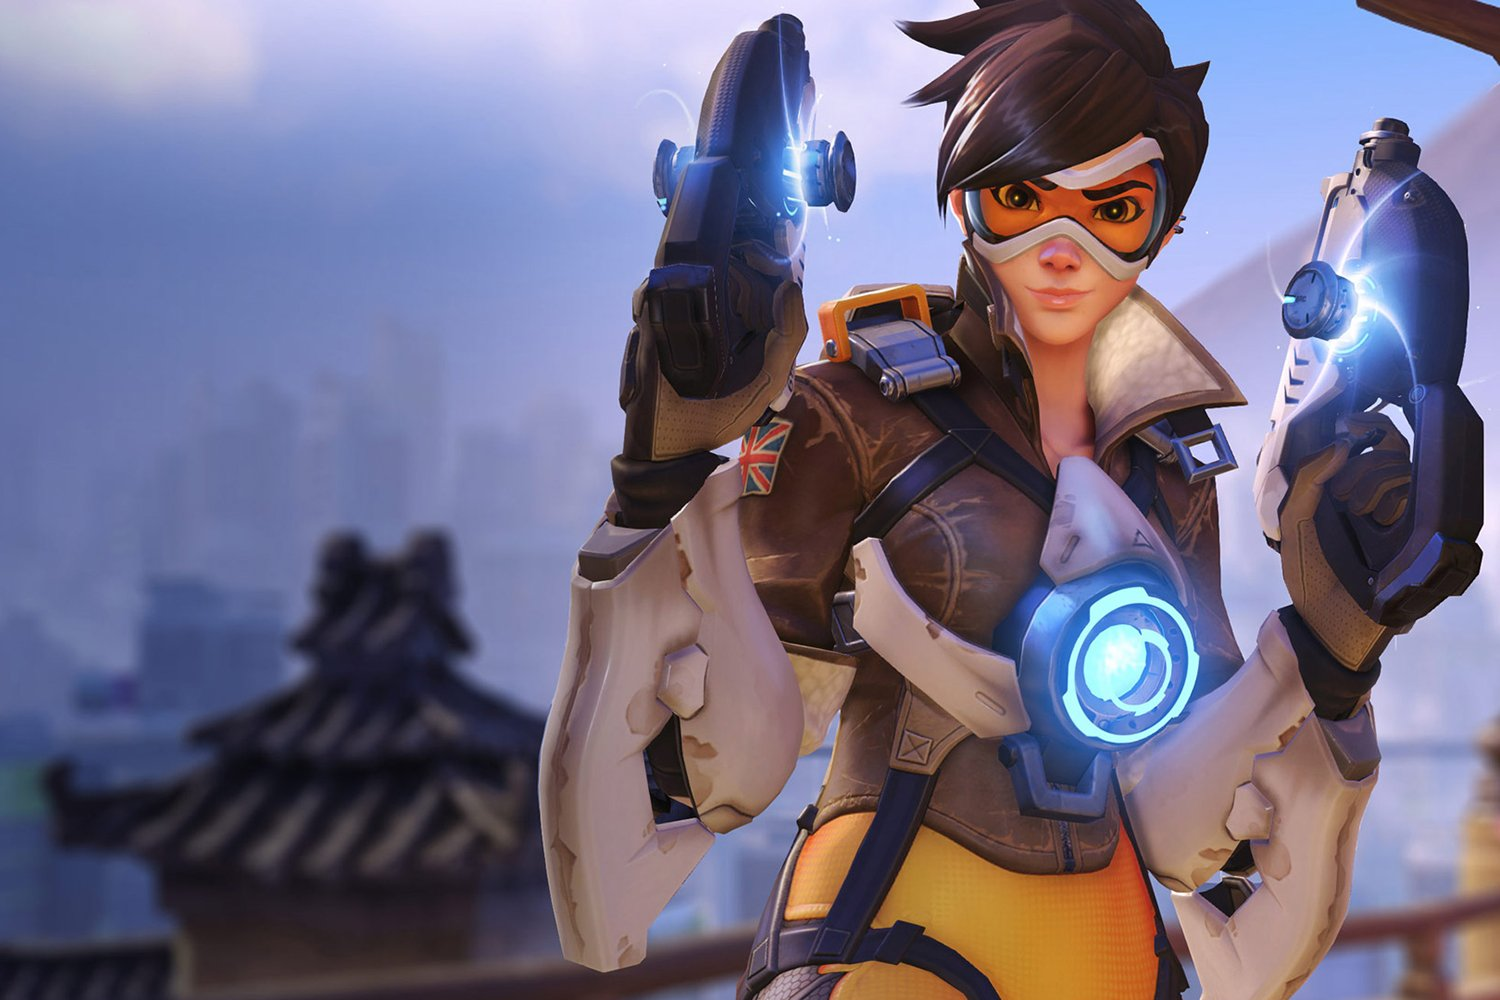 Overwatch sees drop in toxic behavior while Rainbow Six